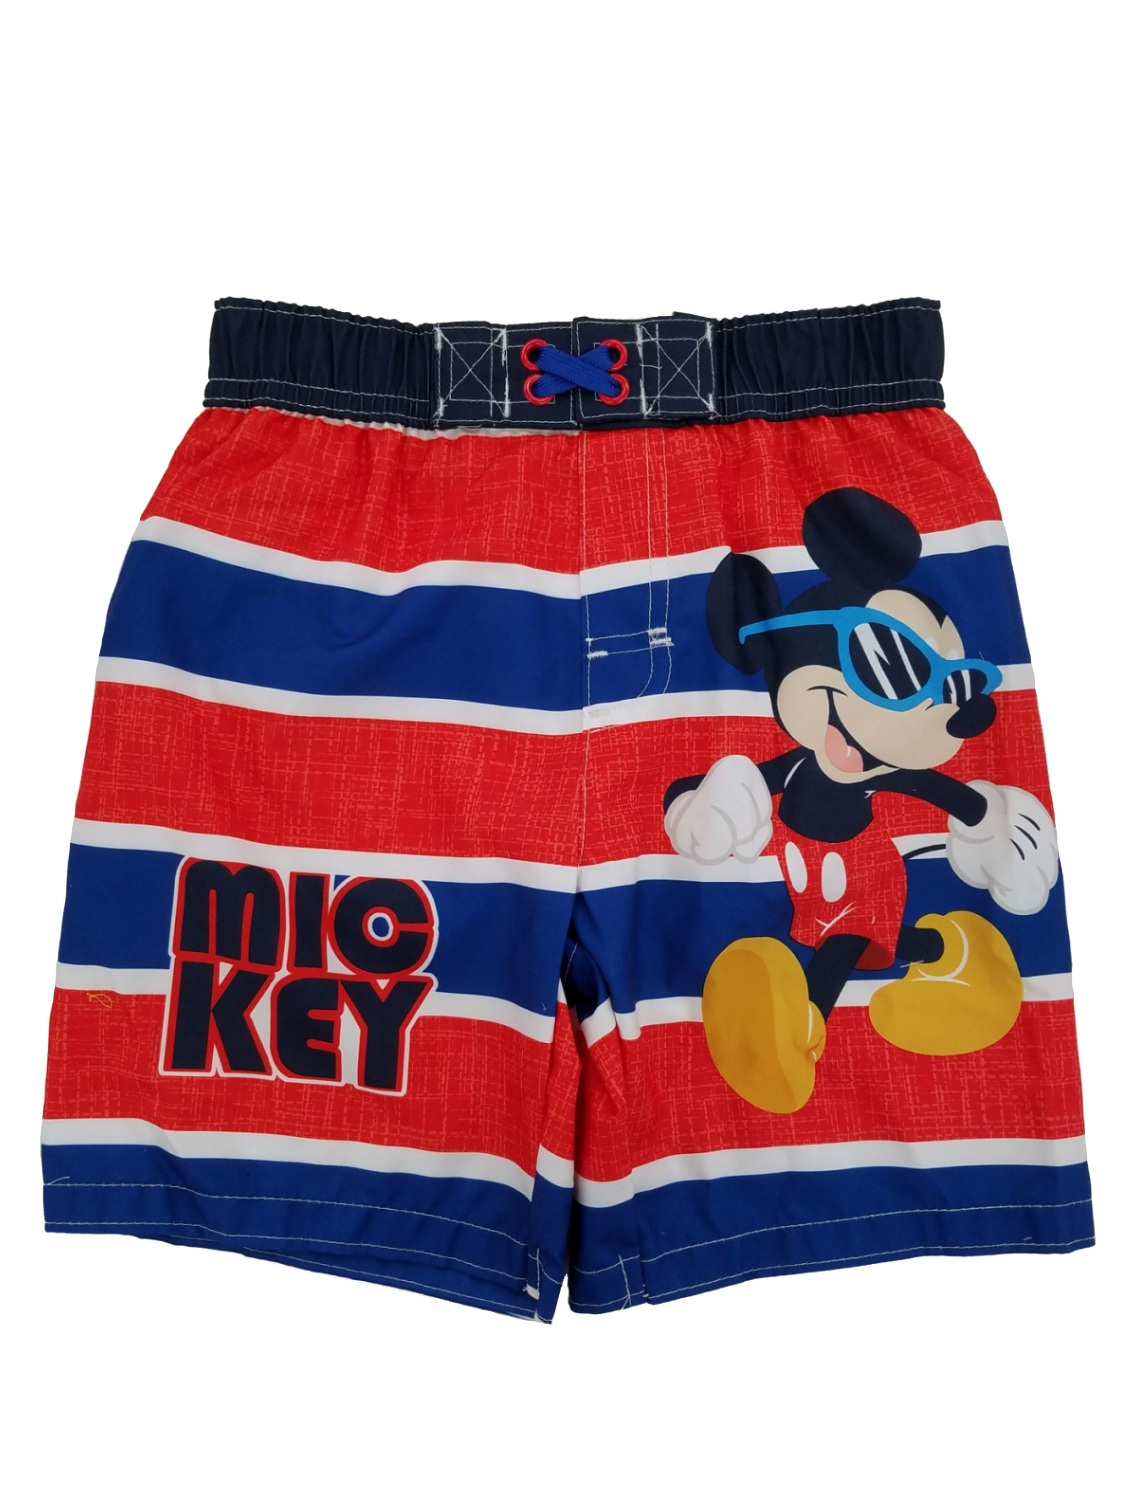 Disney Mickey Mouse Infant /& Toddler Boys Striped Swim Trunks Board Shorts